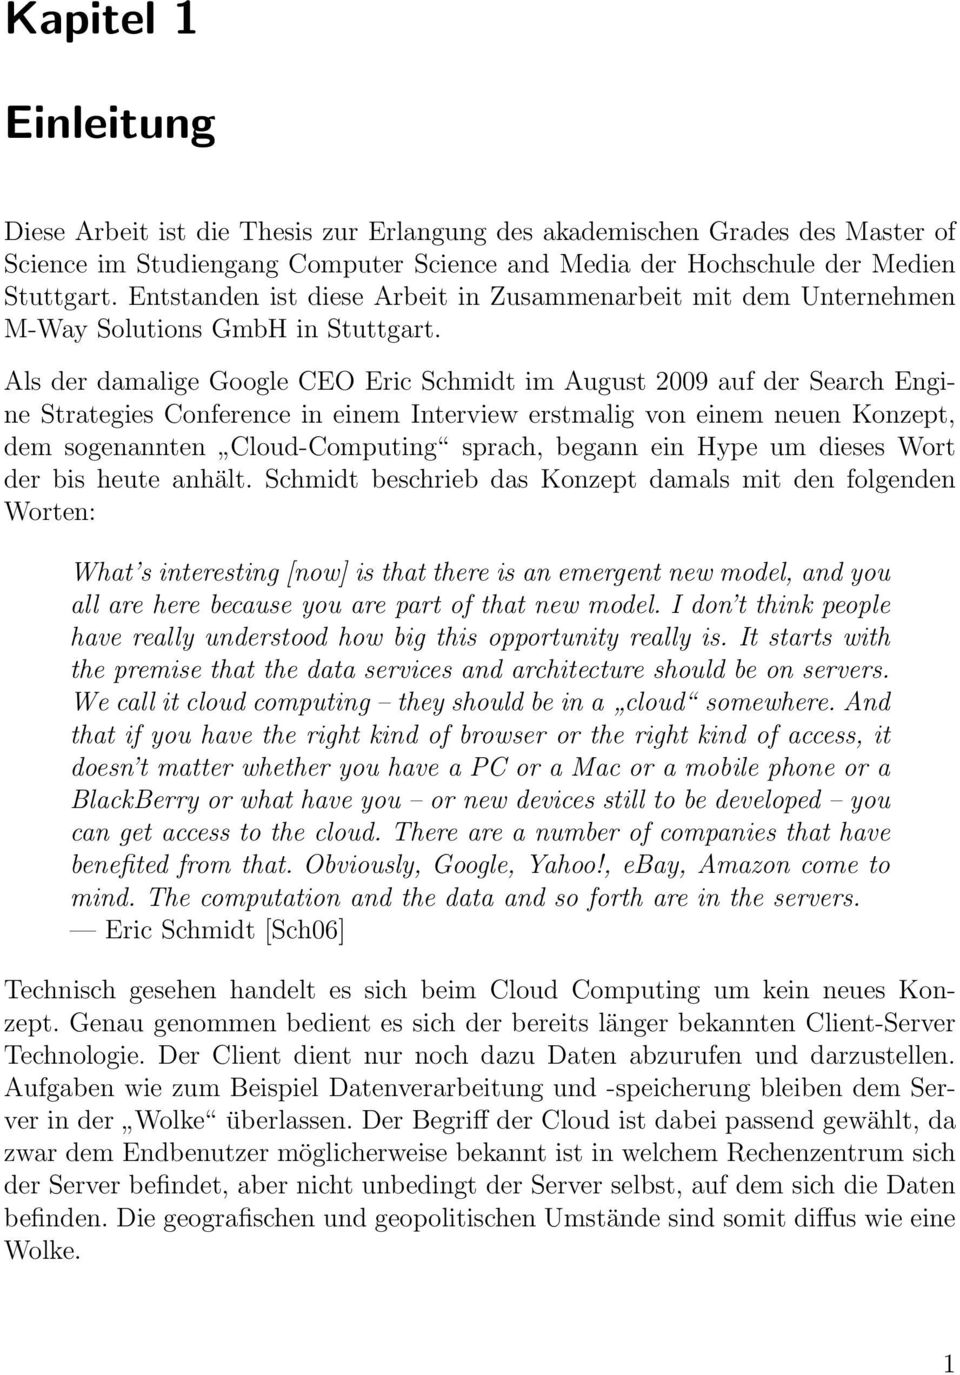 Als der damalige Google CEO Eric Schmidt im August 2009 auf der Search Engine Strategies Conference in einem Interview erstmalig von einem neuen Konzept, dem sogenannten Cloud-Computing sprach,